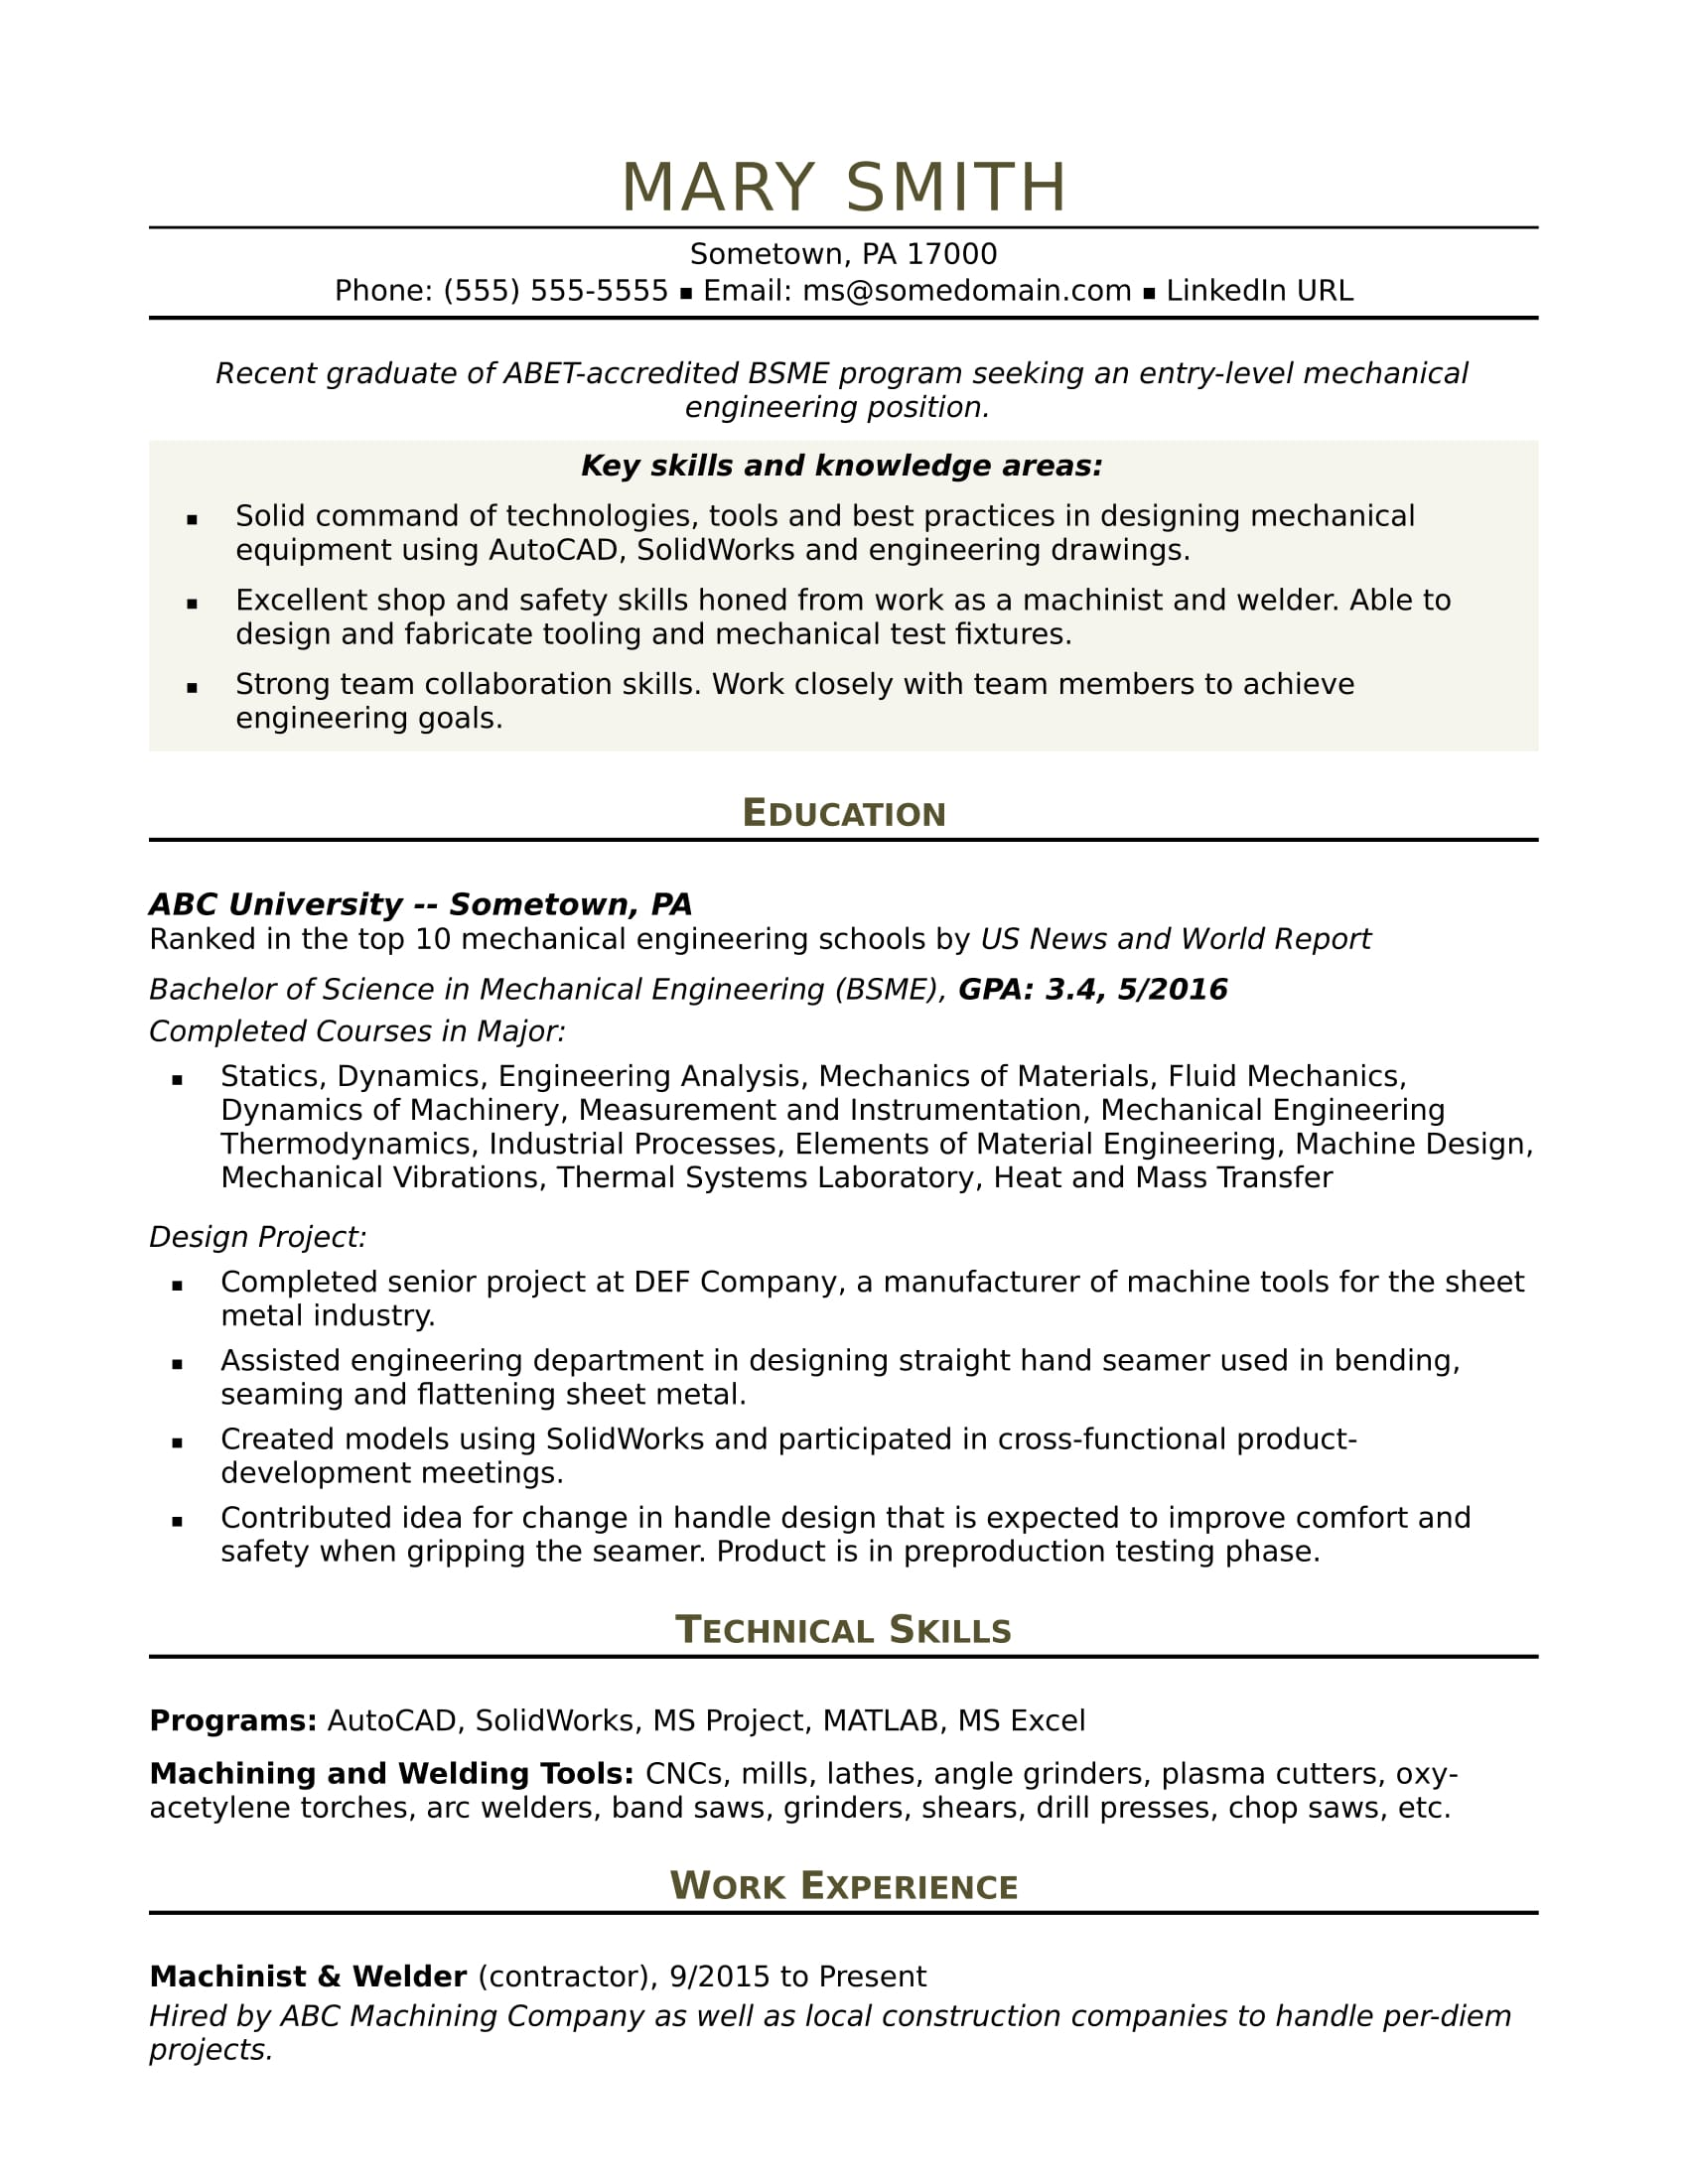 sample resume for an entry level mechanical engineer - Industrial Engineer Resume New Section